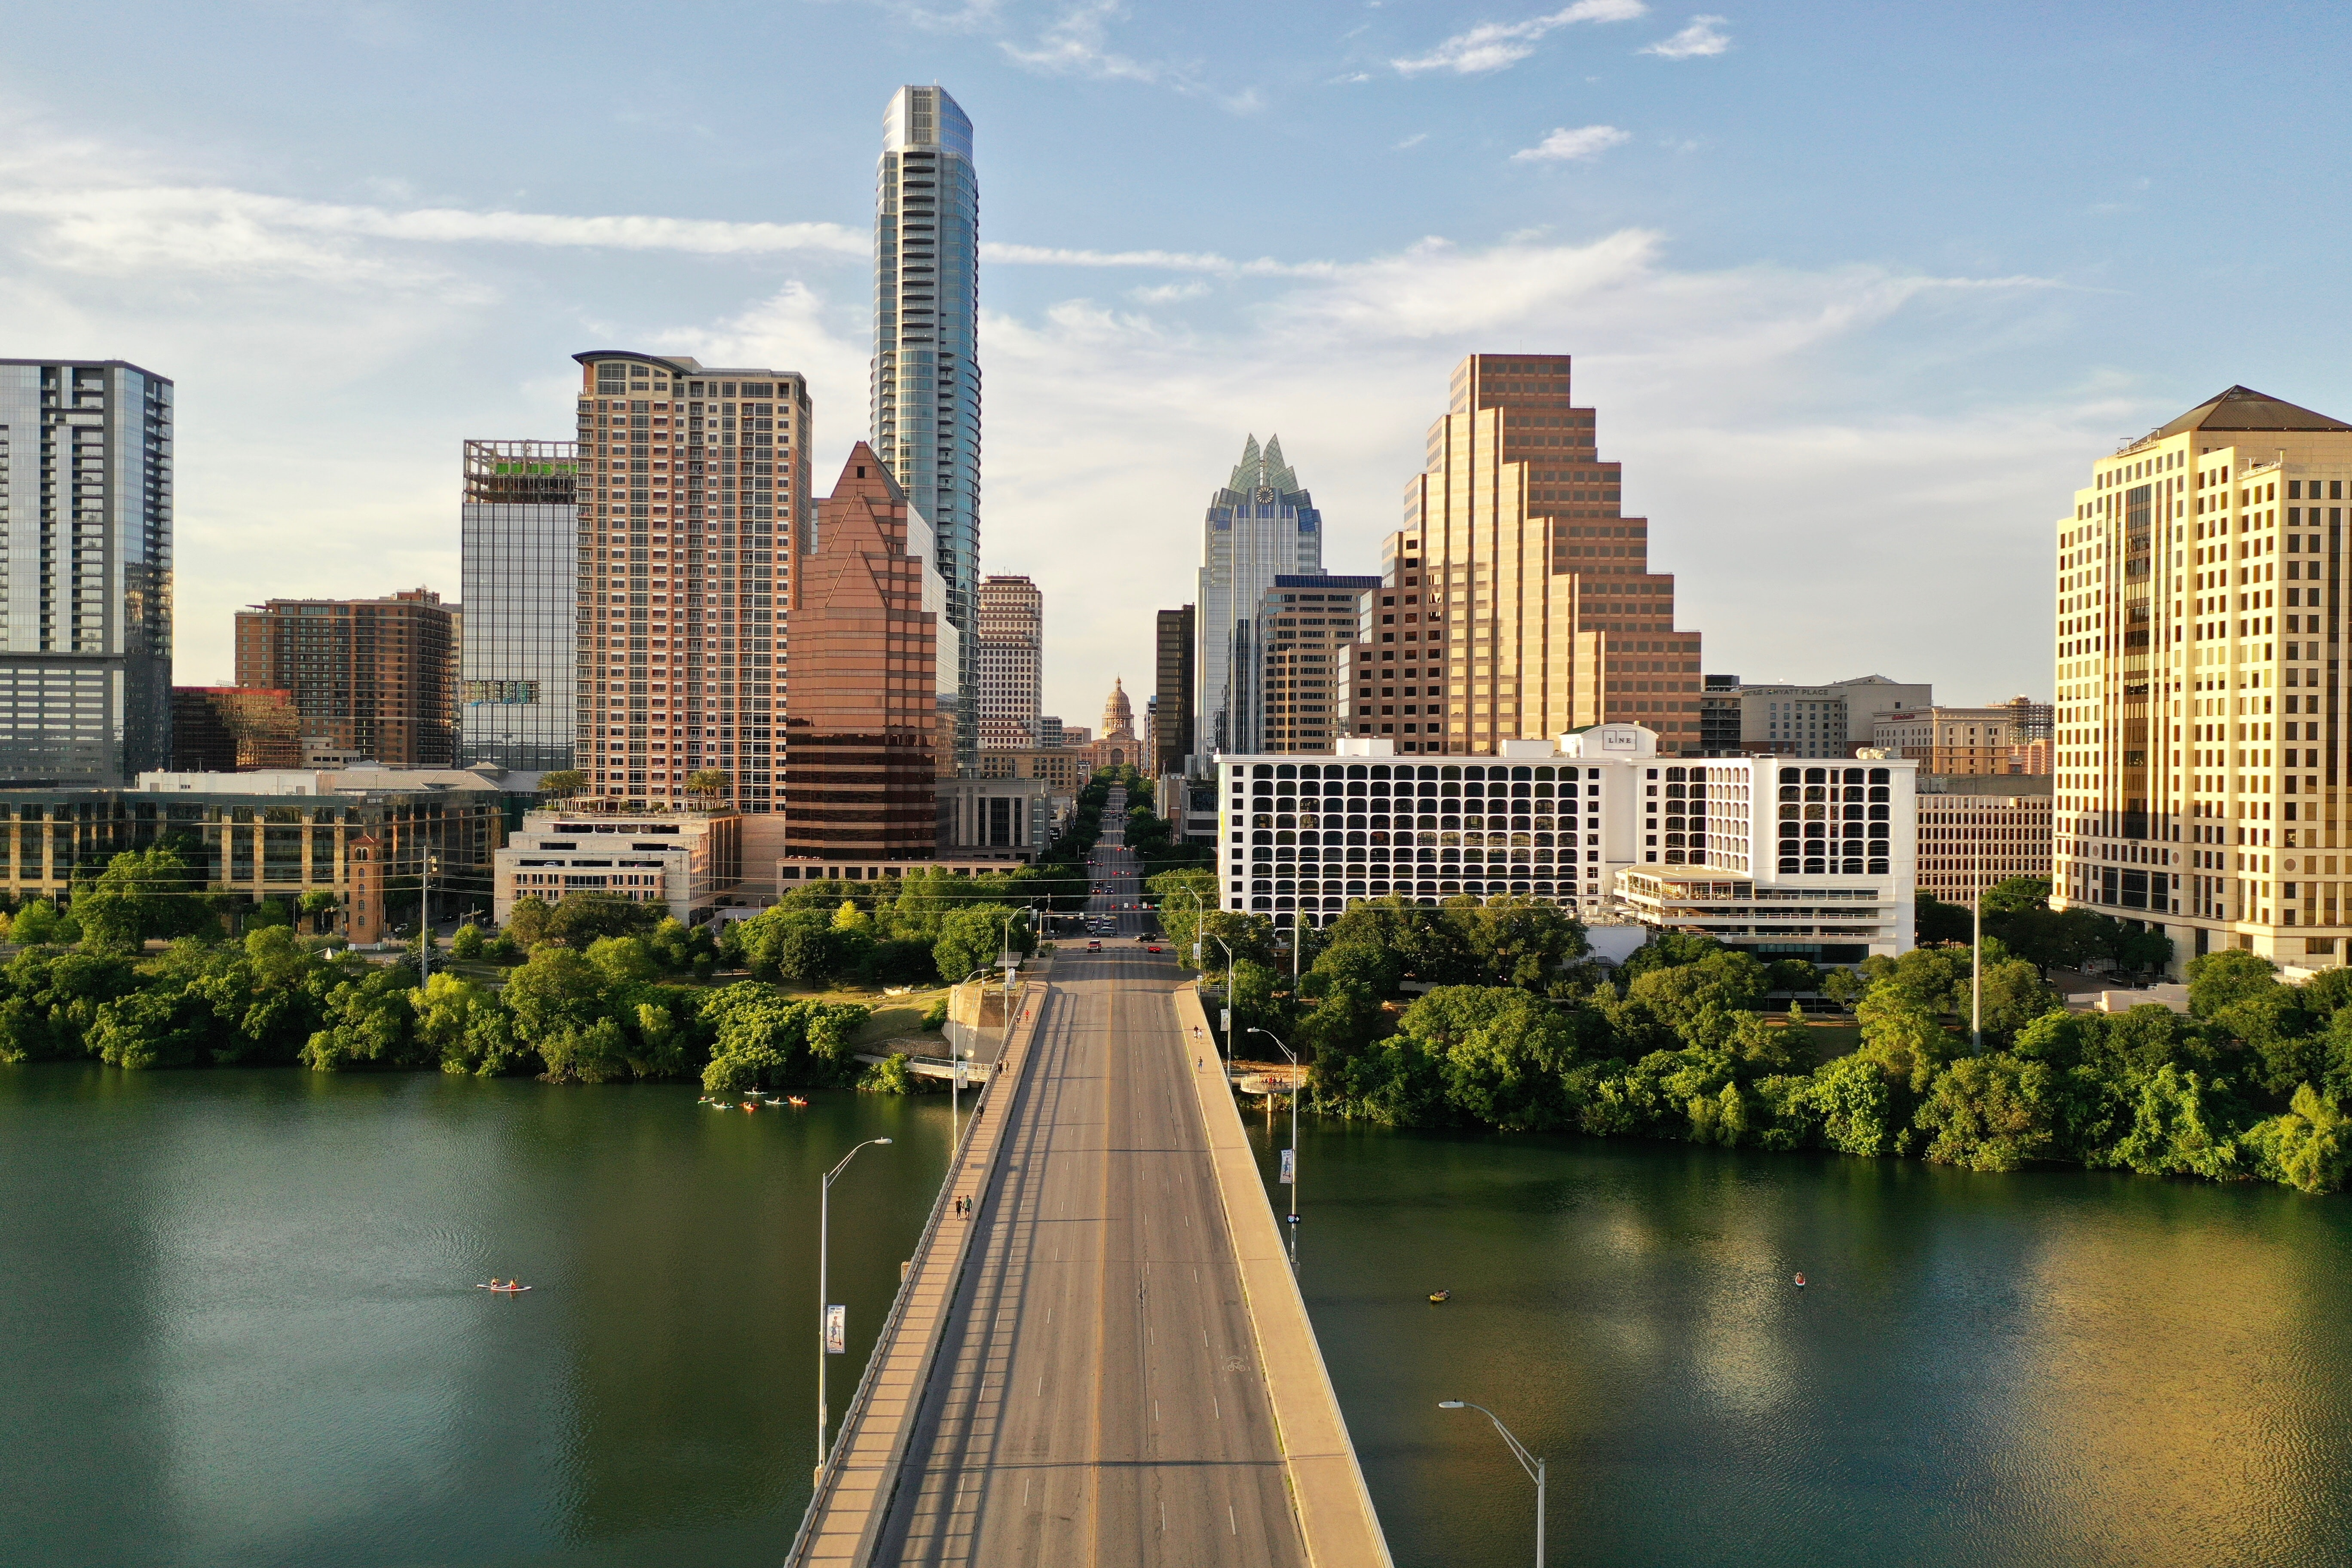 view of downtown austin from a bridge